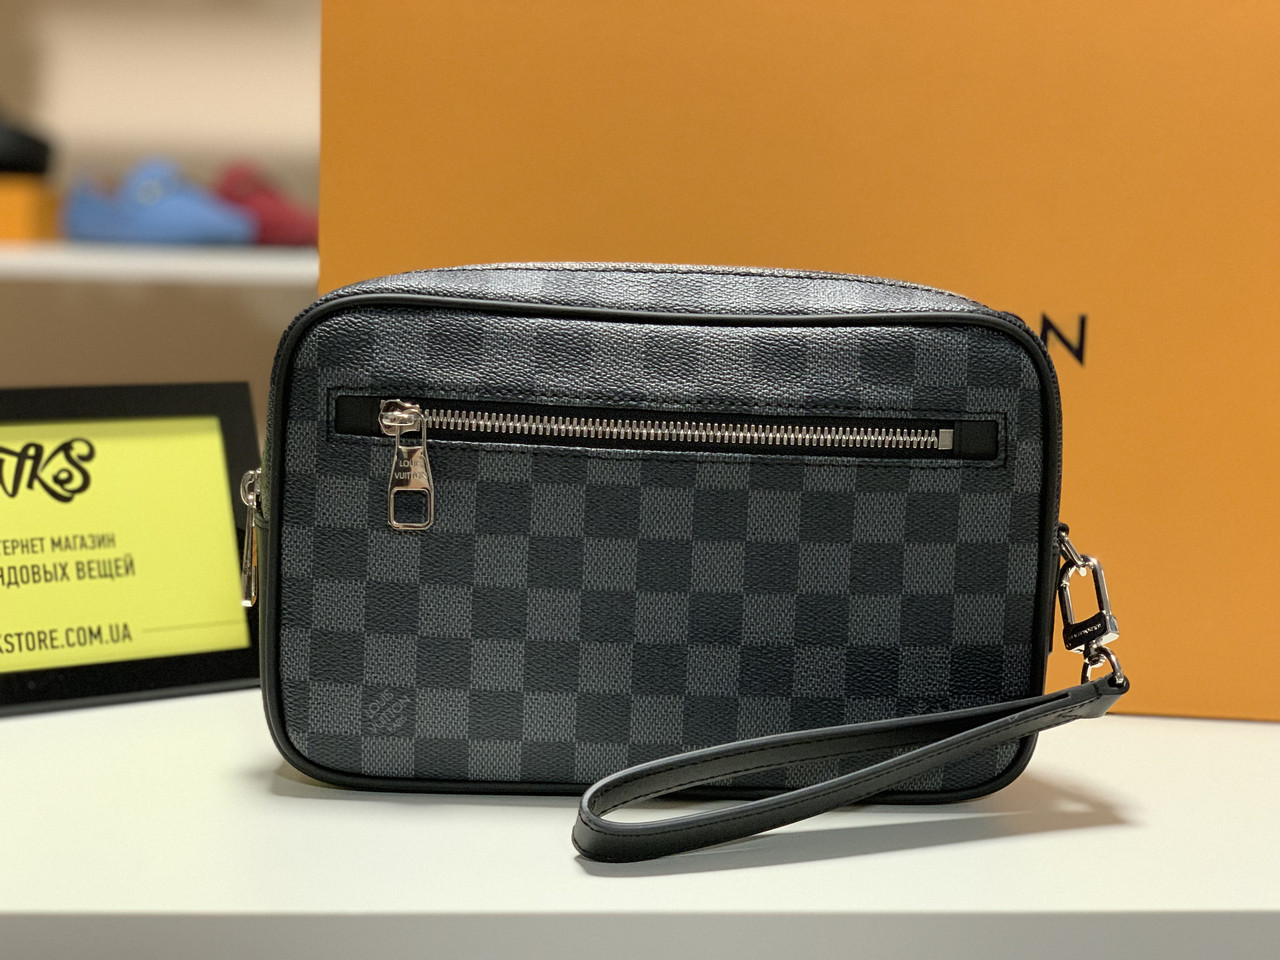 c8e3a3c4c569 Мужская сумка Louis Vuitton KASAI original quality, цена 5 600 грн ...